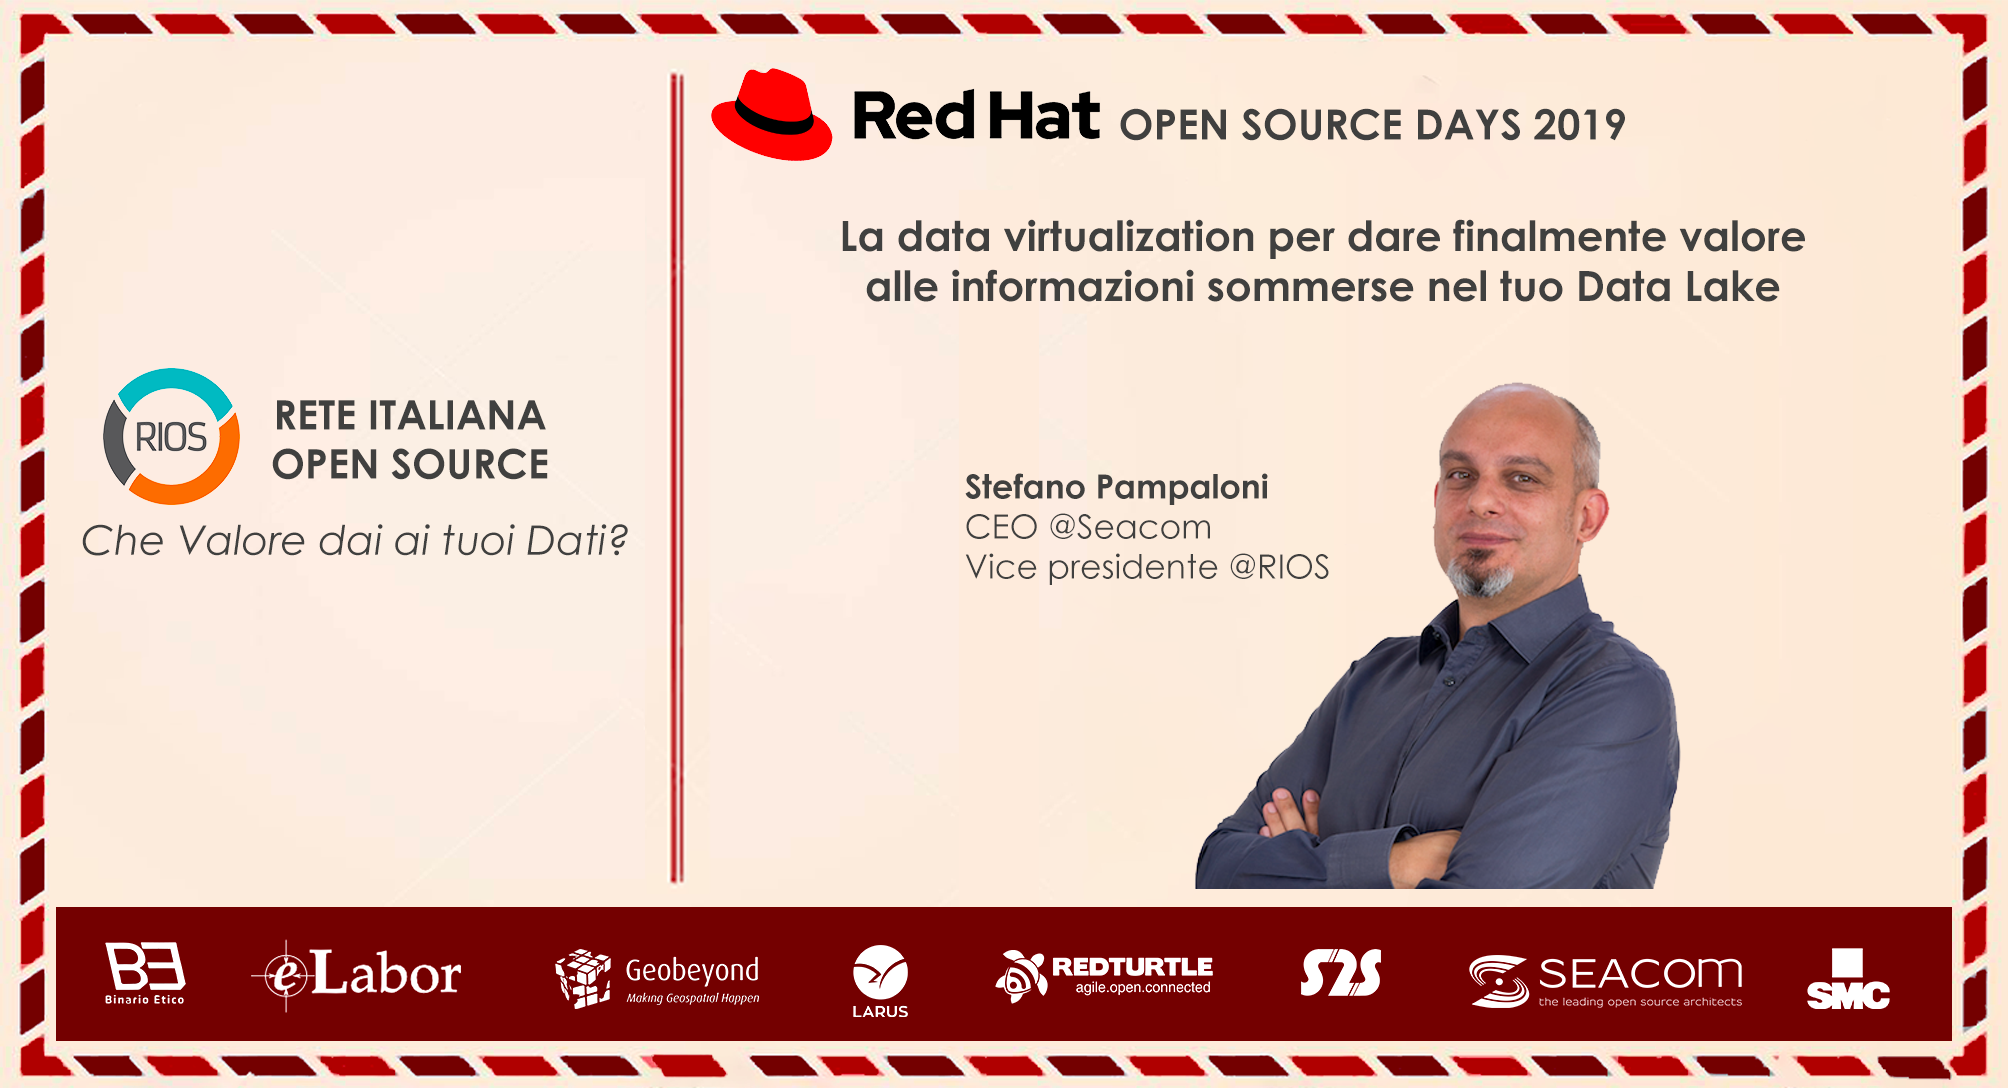 RedHat 2019: data virtualization